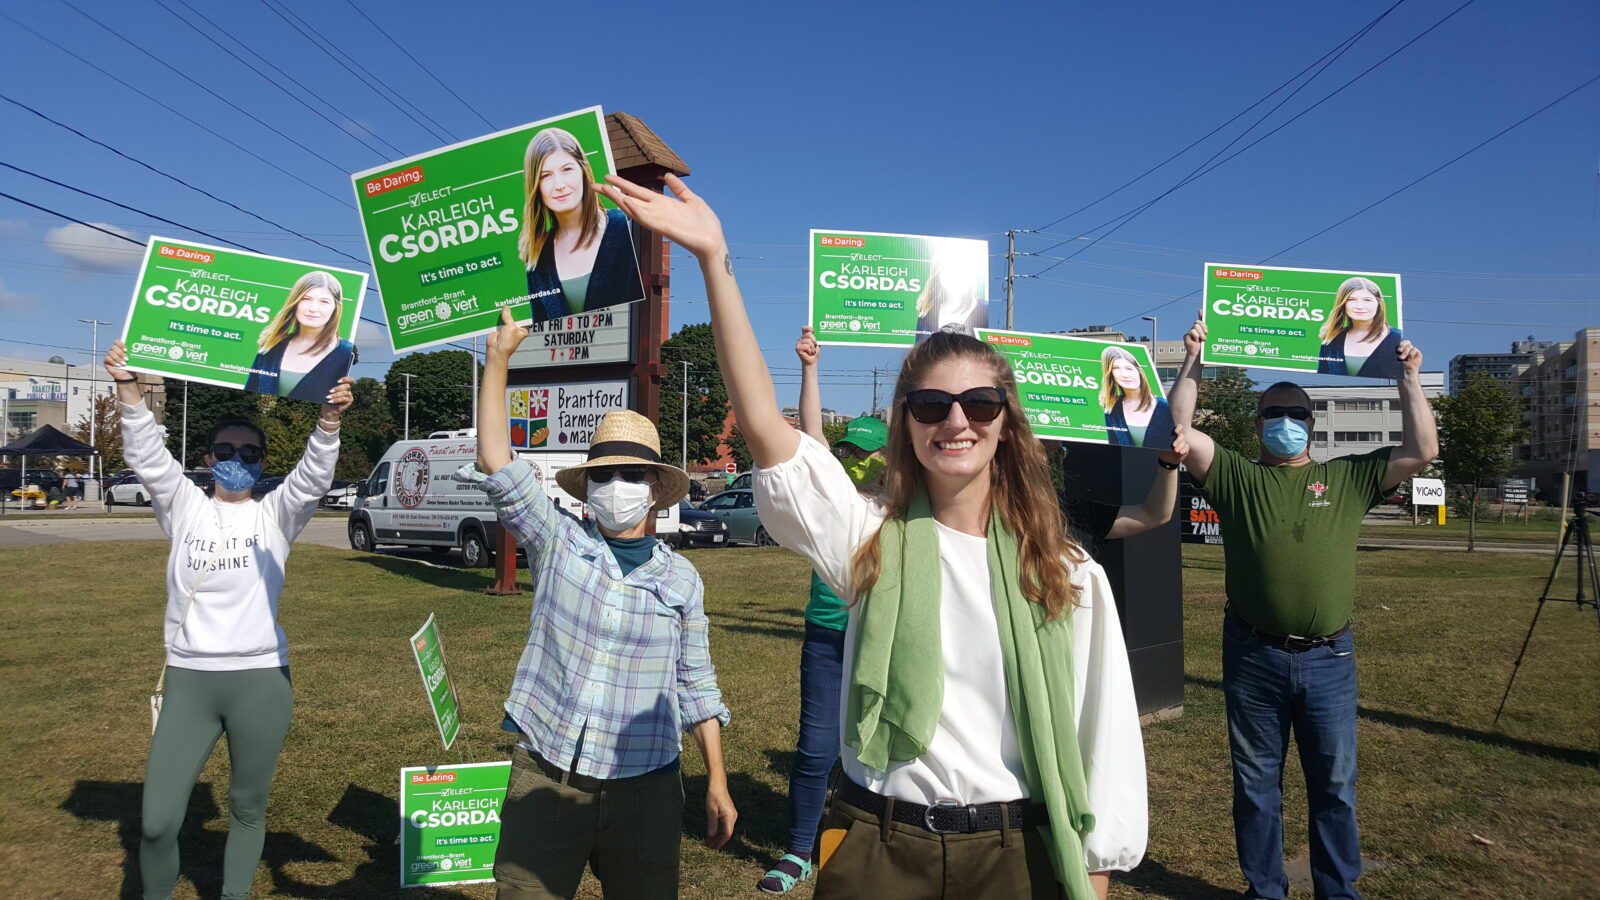 Karleigh Csordas with the campaign team waving signs